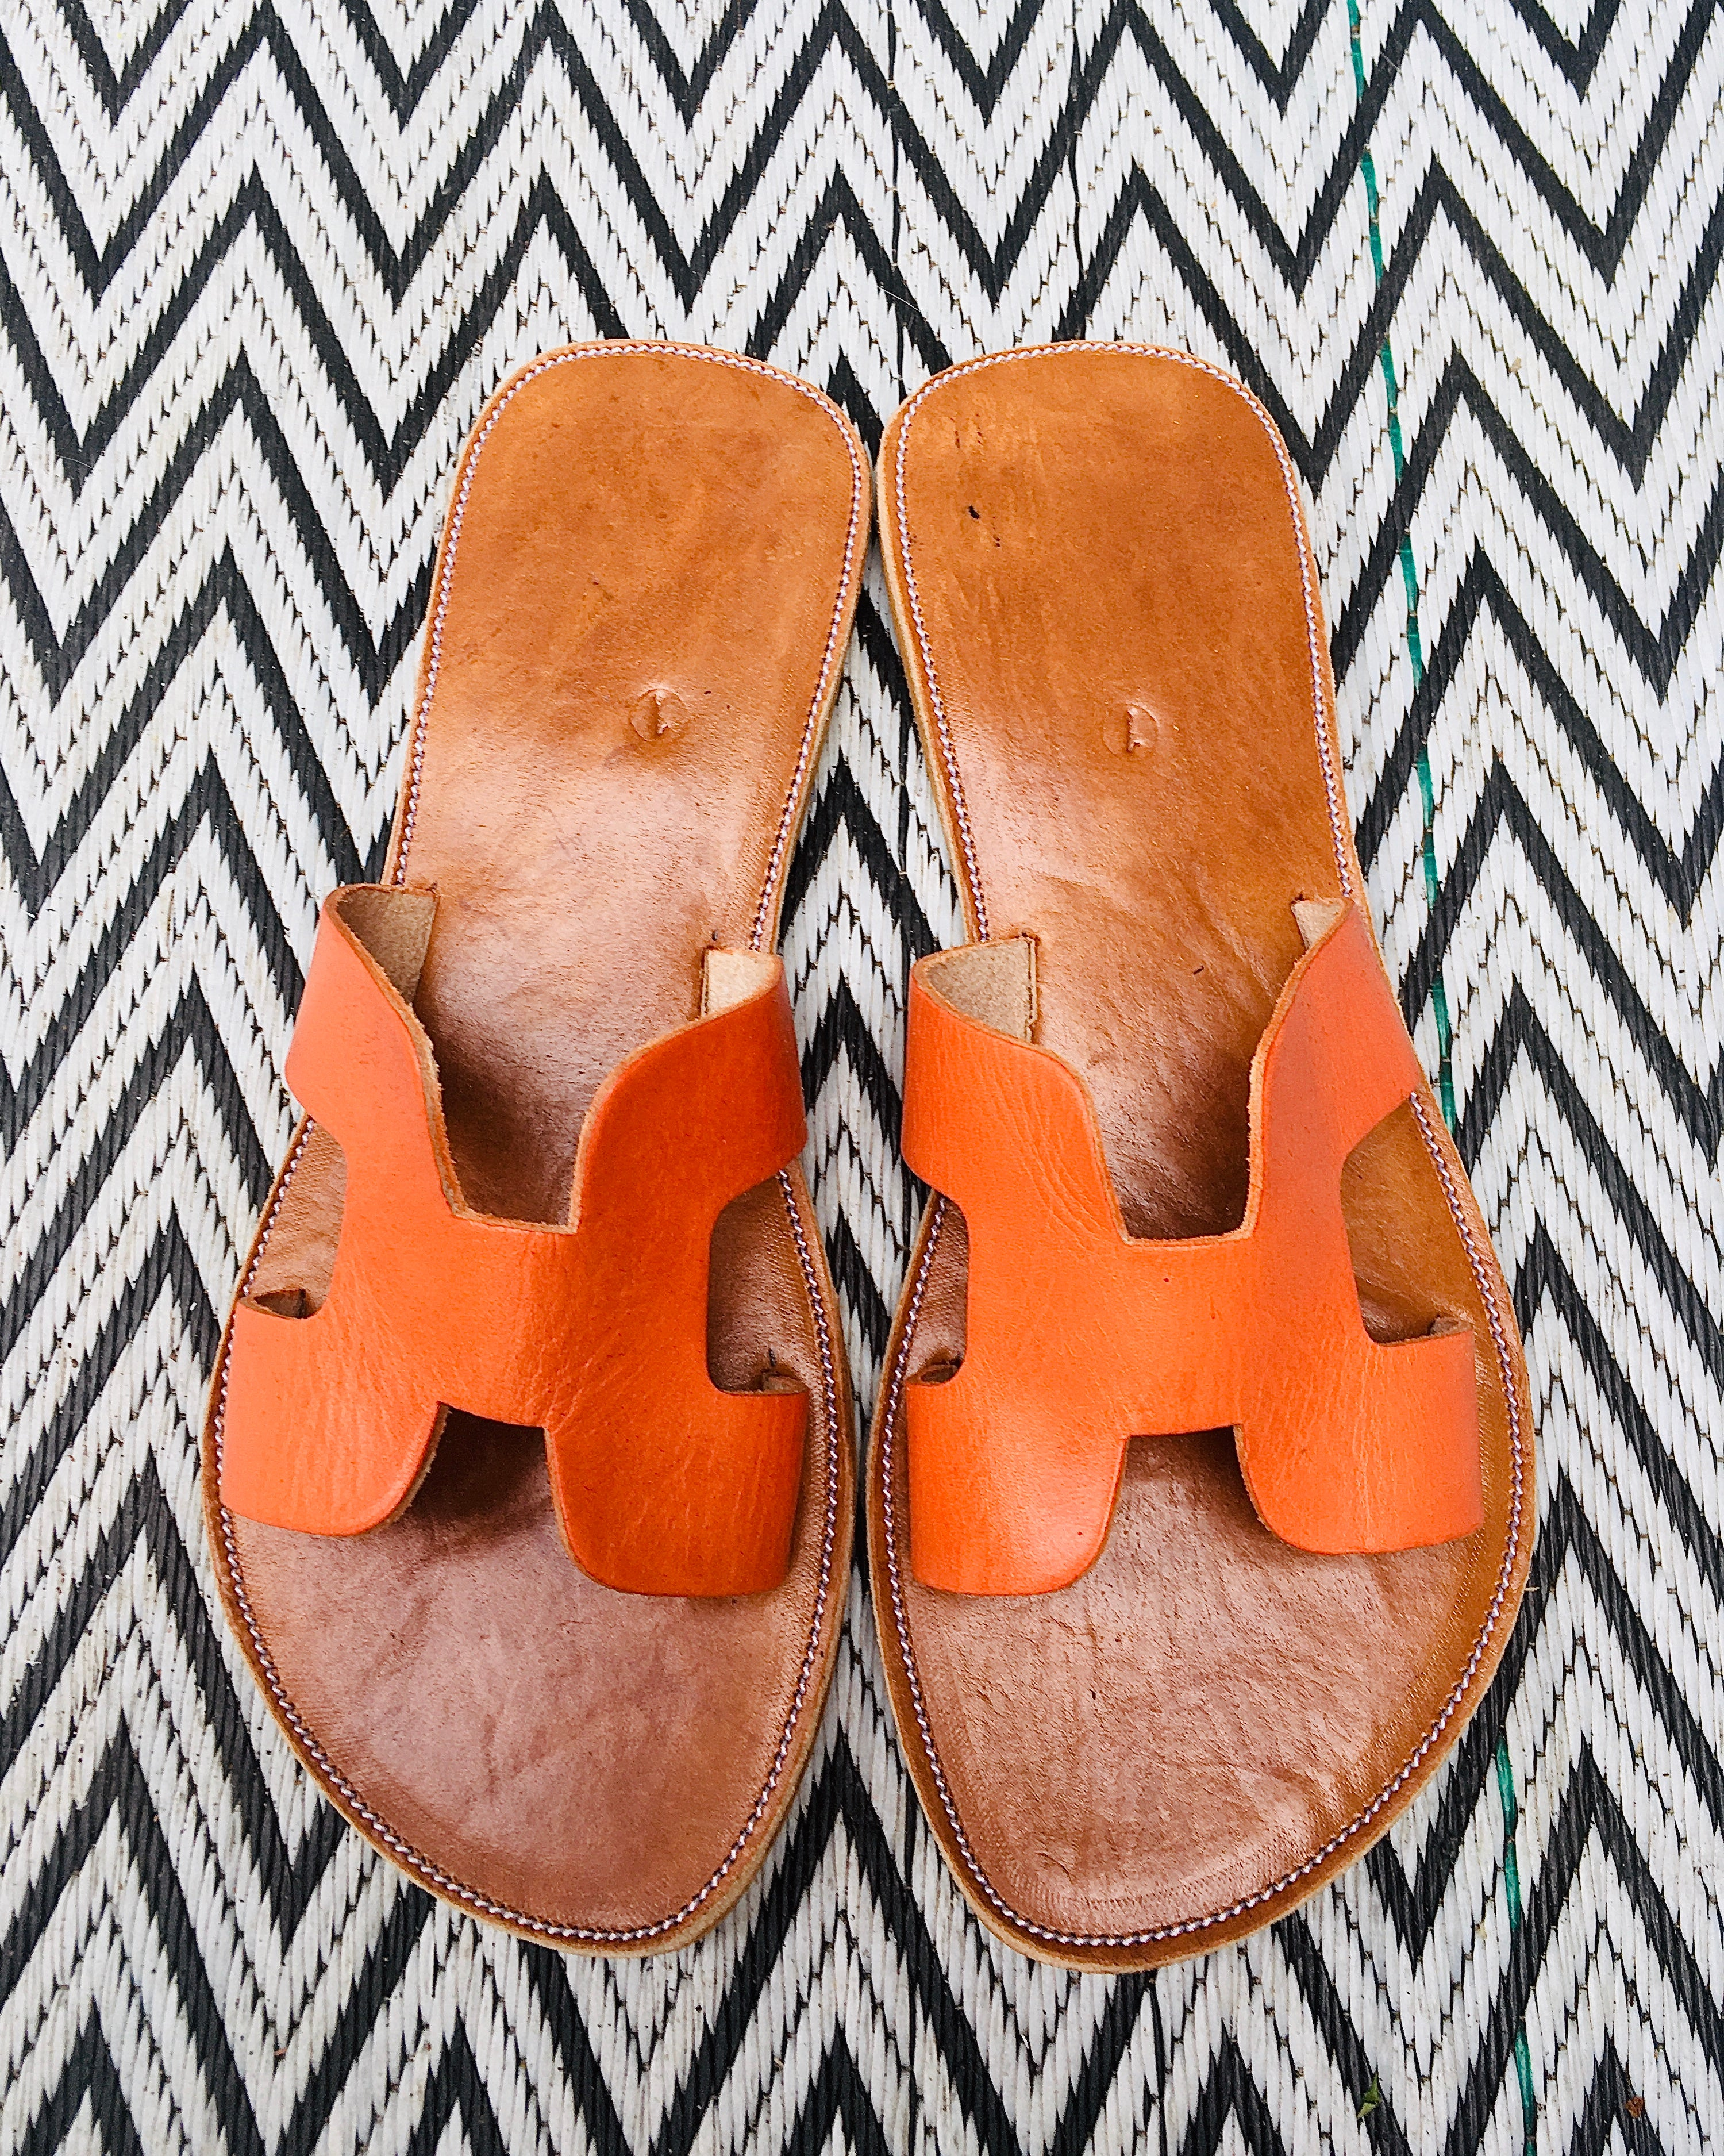 Hand made Leather Sandals